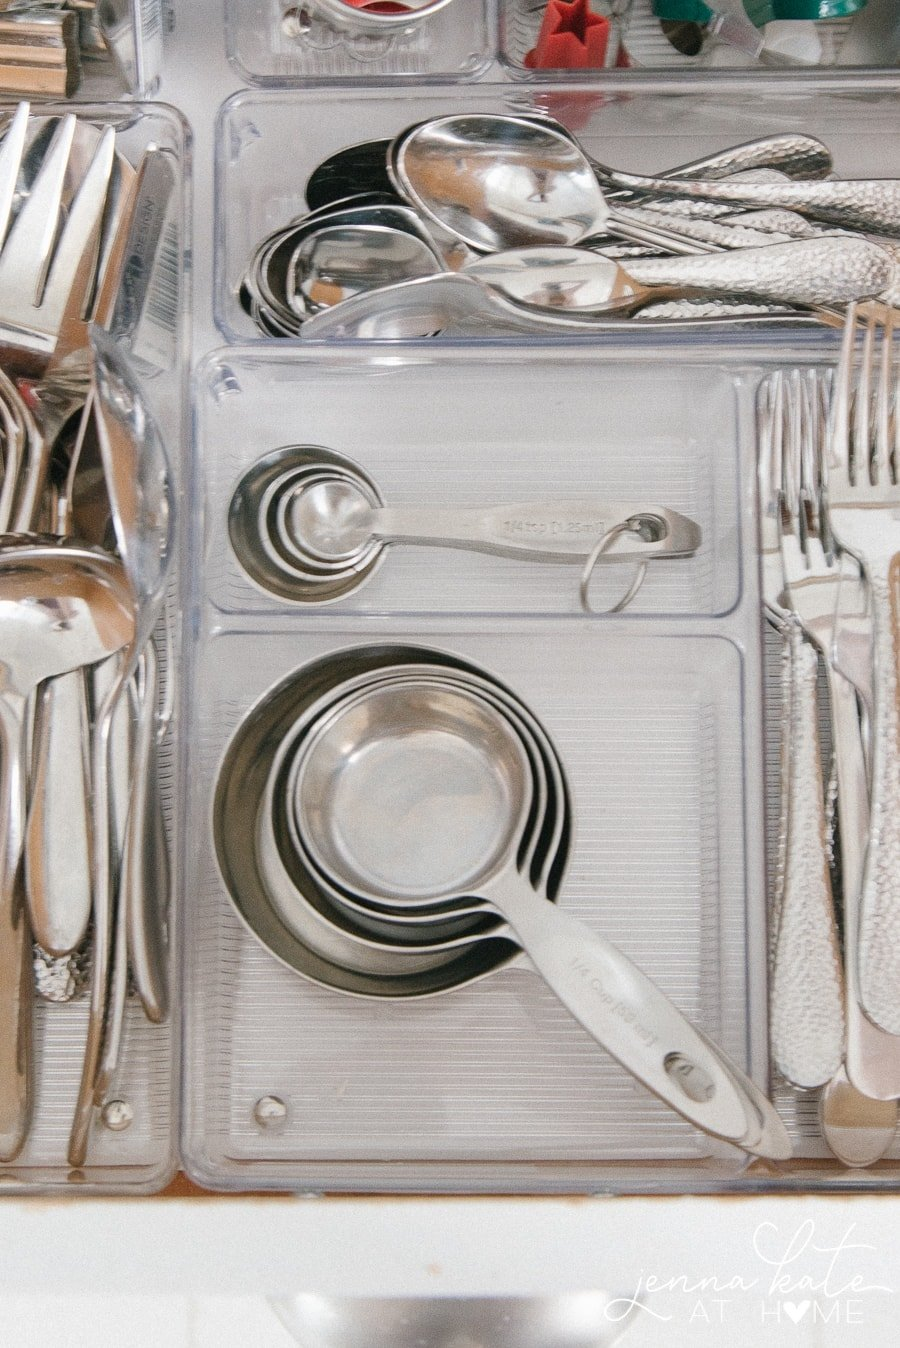 Organize all cutlery and bakeware supplies in a drawer with acrylic dividers